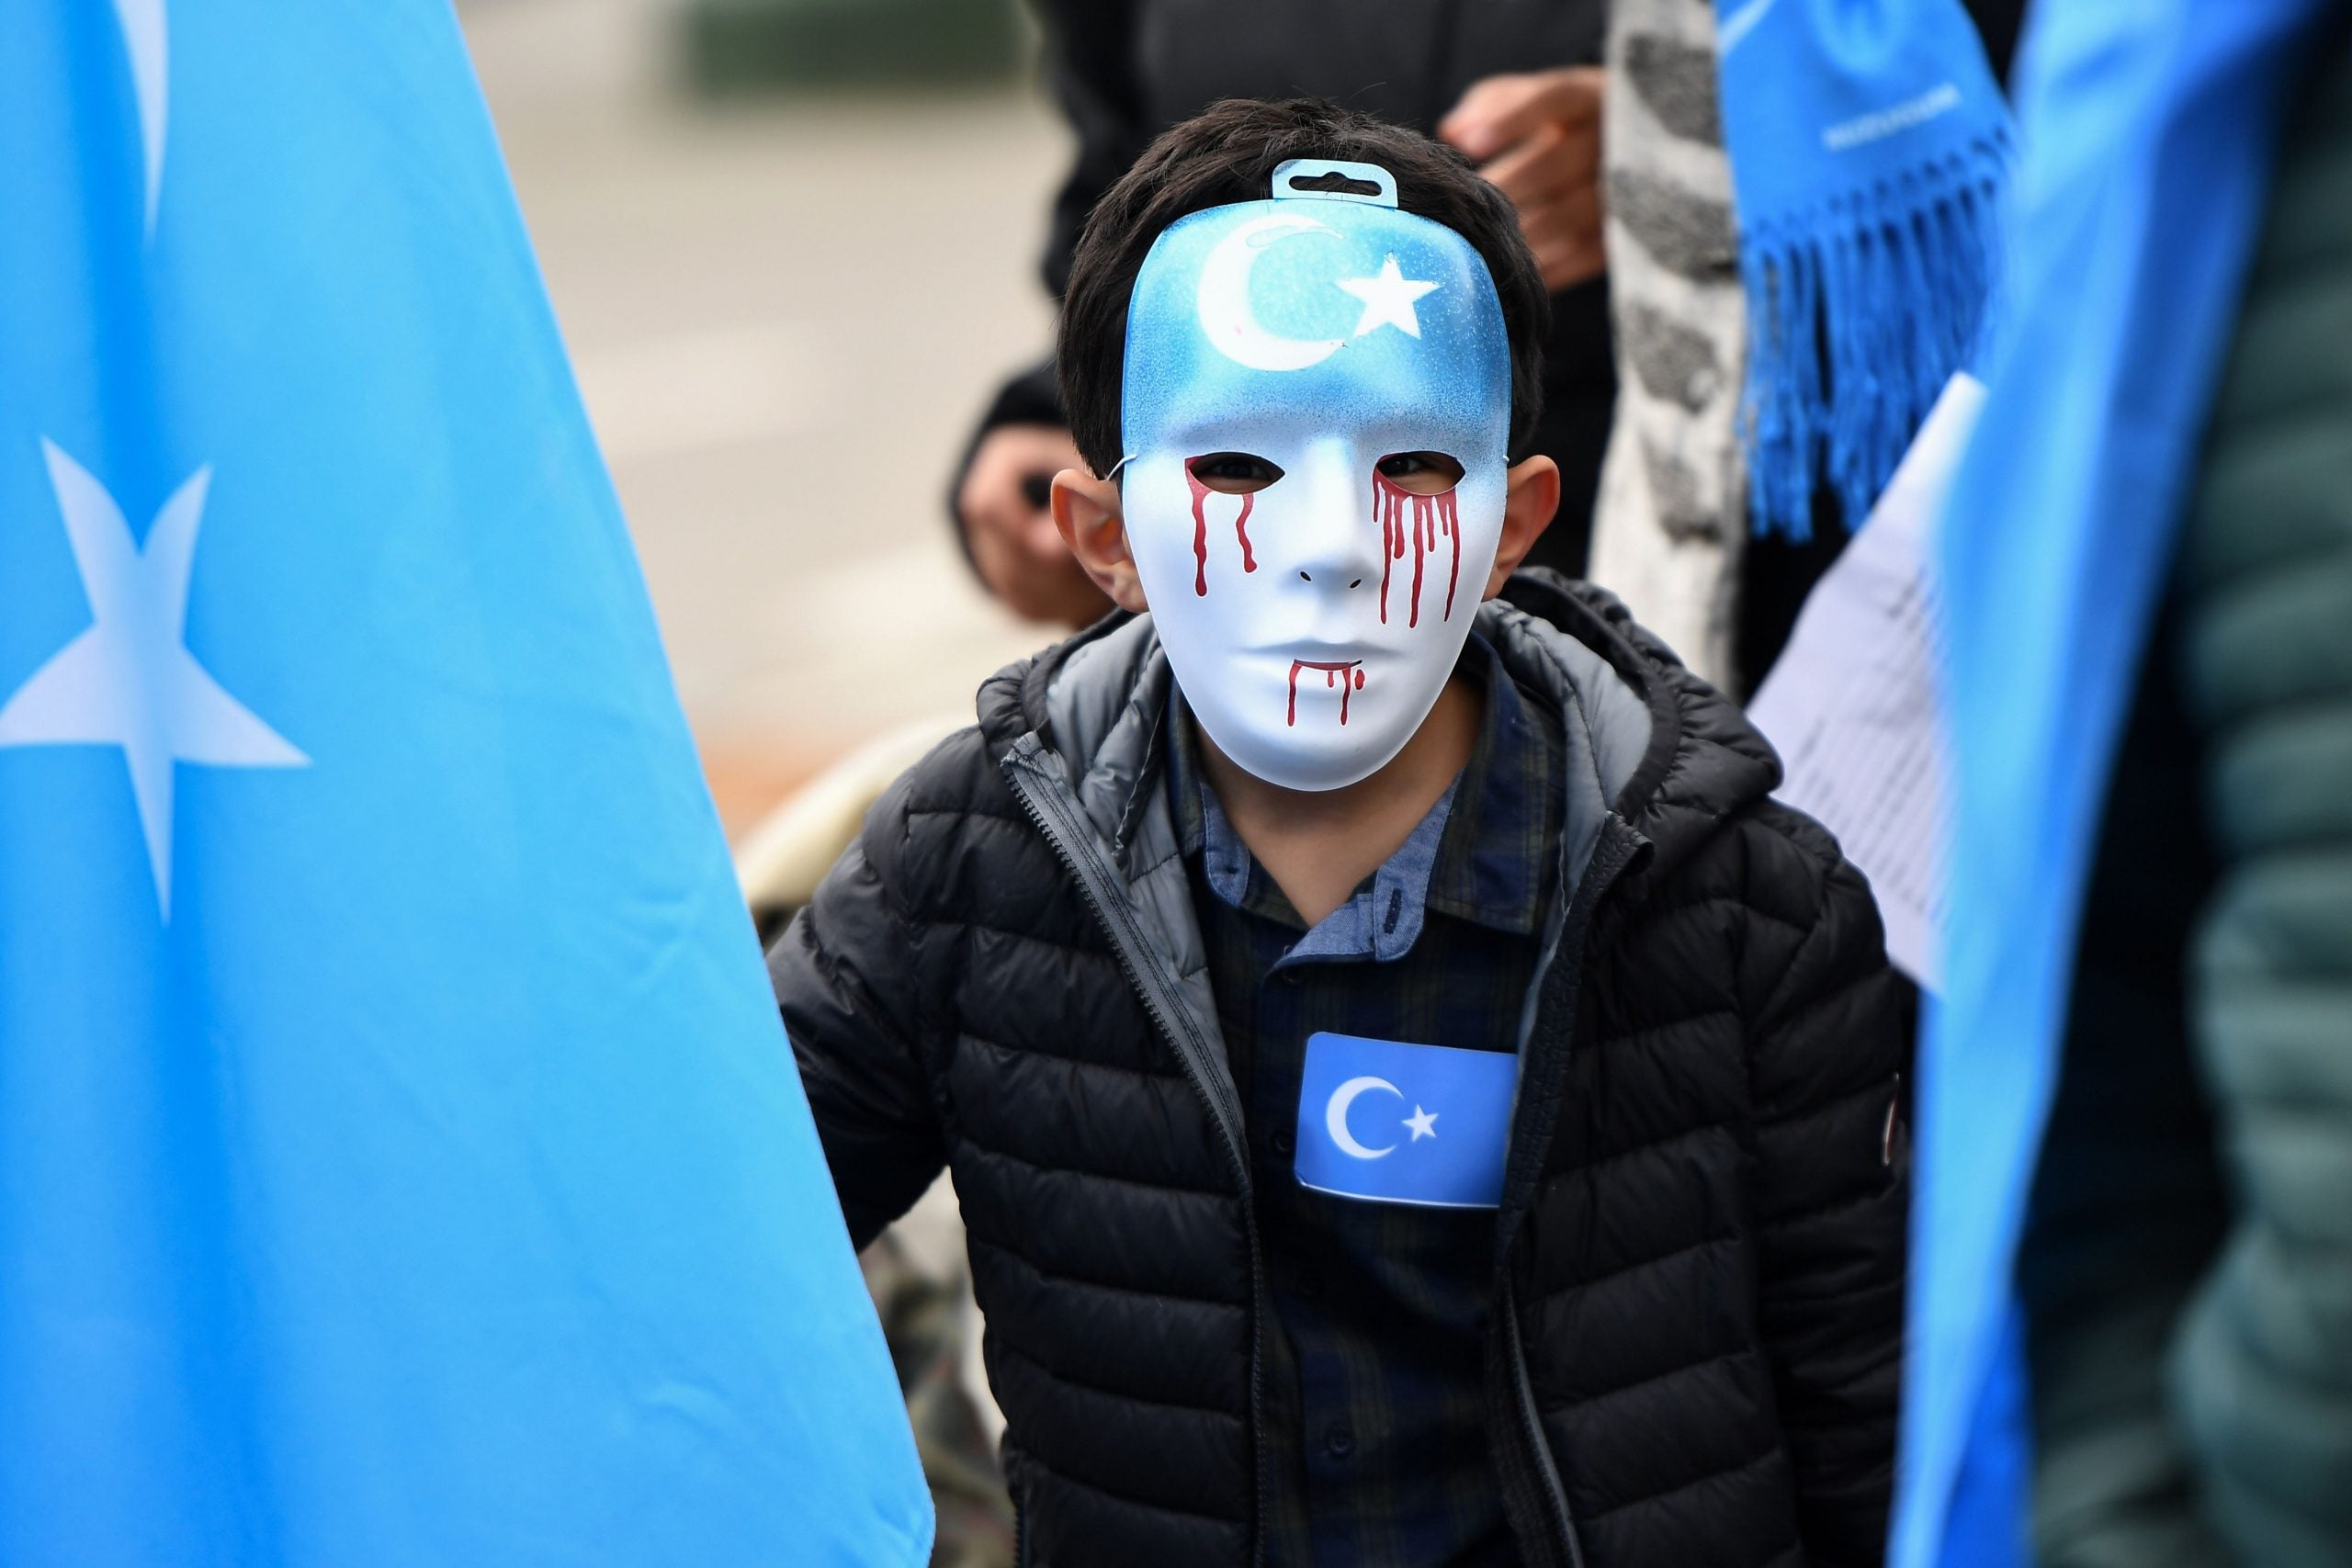 China's Uyghur detention camps may be the largest mass incarceration since the Holocaust